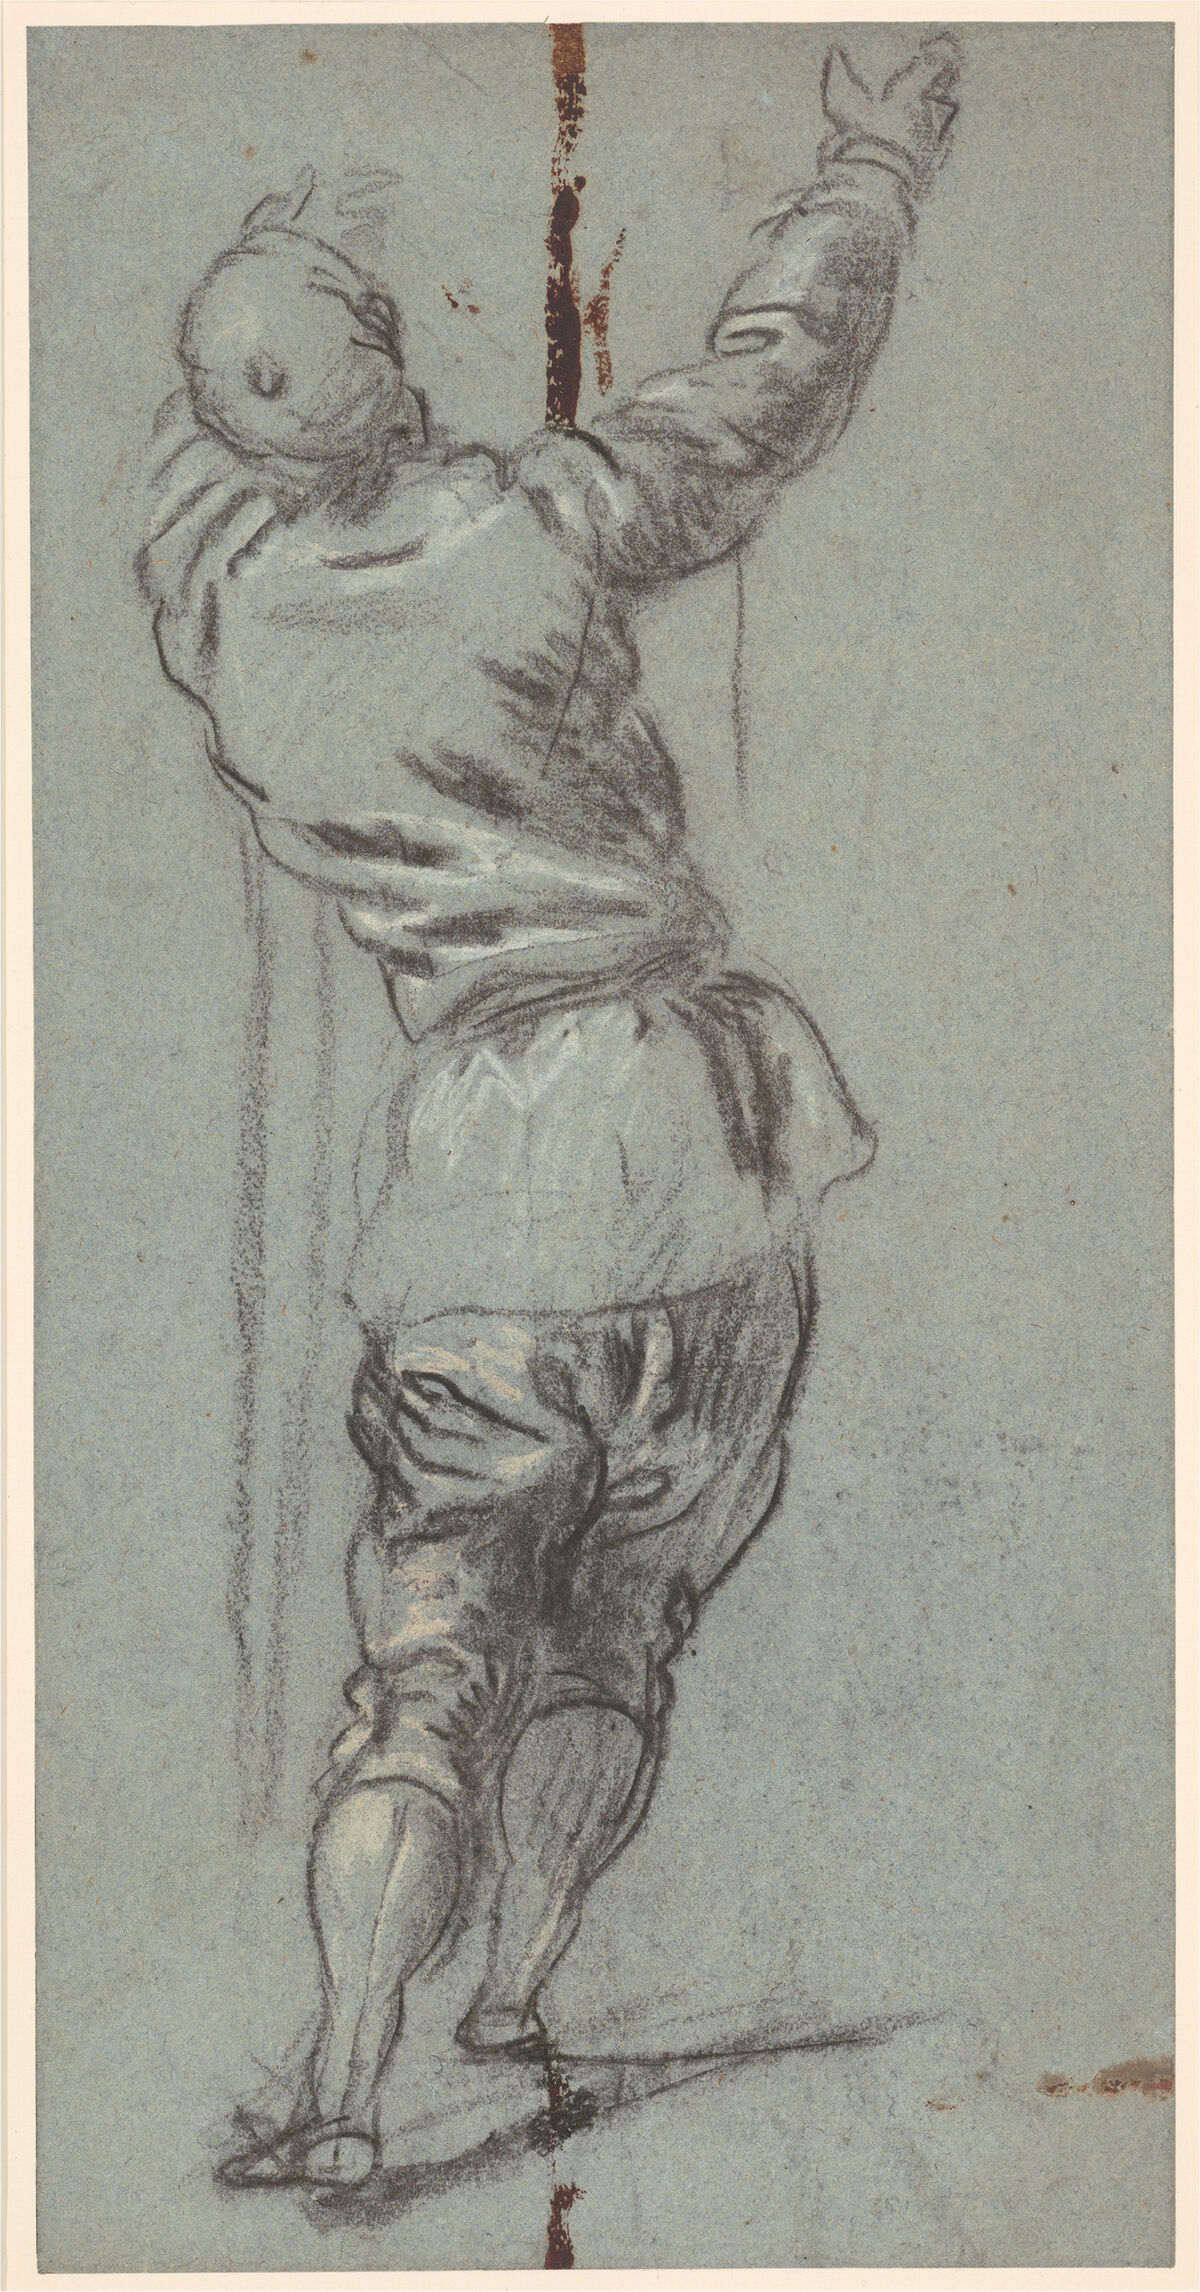 Jacopo Tintoretto, Standing Clothed Man Seen from Behind, c. 1555. © Her Majesty Queen Elizabeth II 2017. Courtesy of the Royal Collection Trust and the National Gallery of Art.